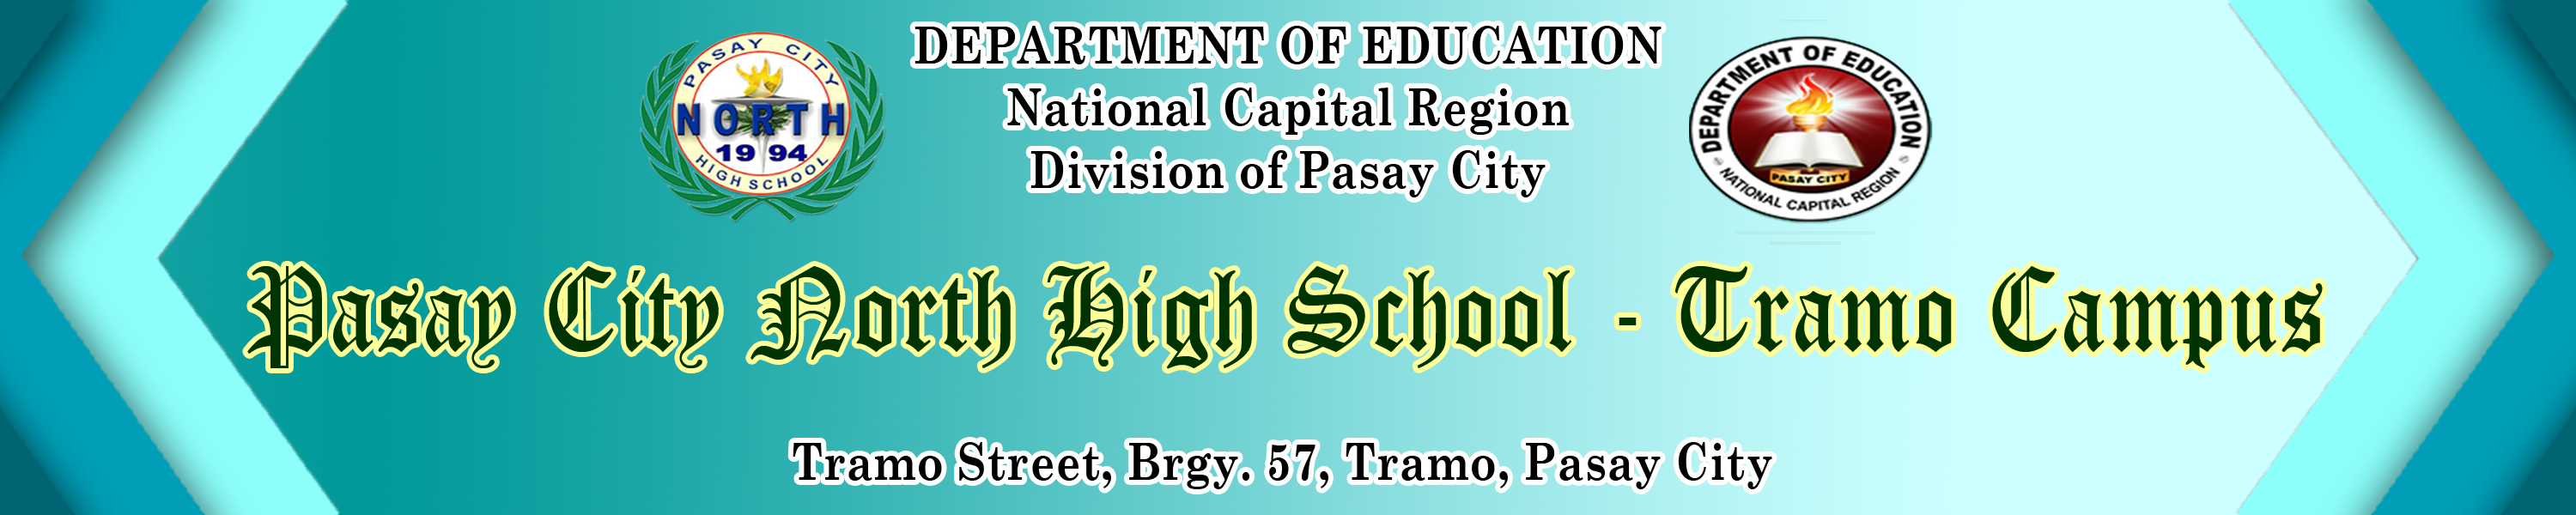 Pasay City North High School - Tramo Campus